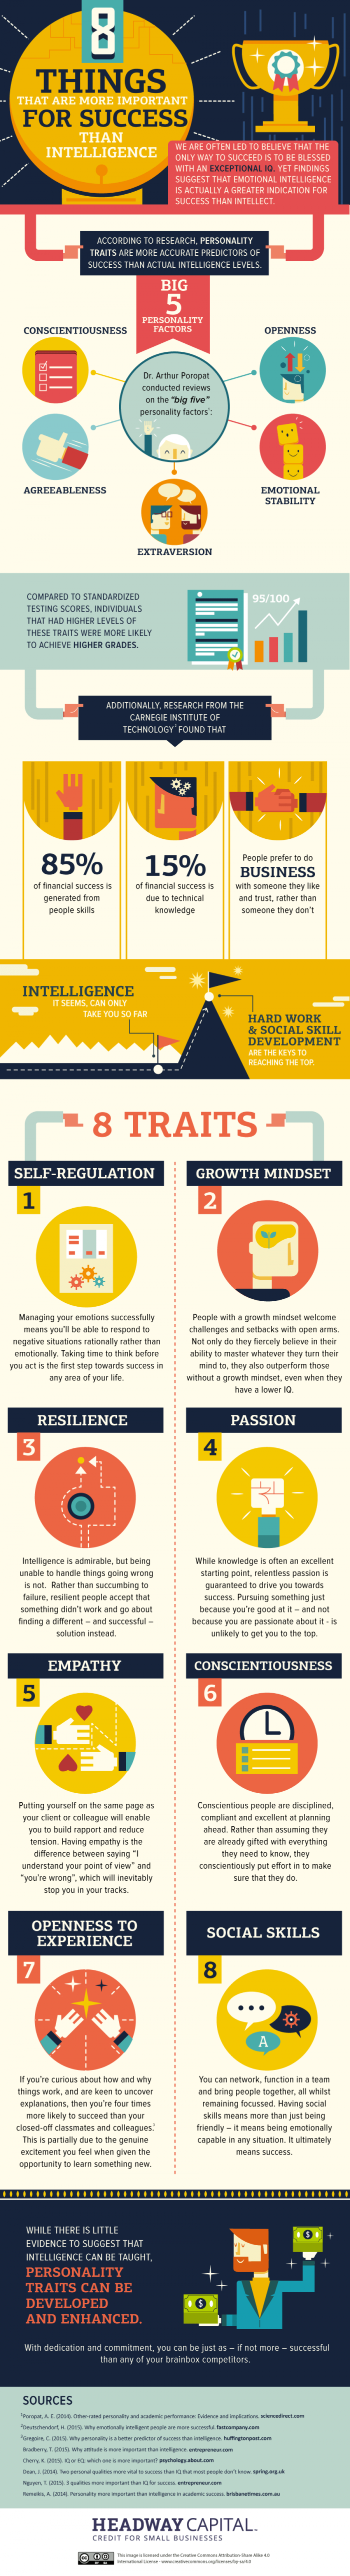 8 Primary Traits for Success (And Intelligence Isn't One of Them!) - Infographic